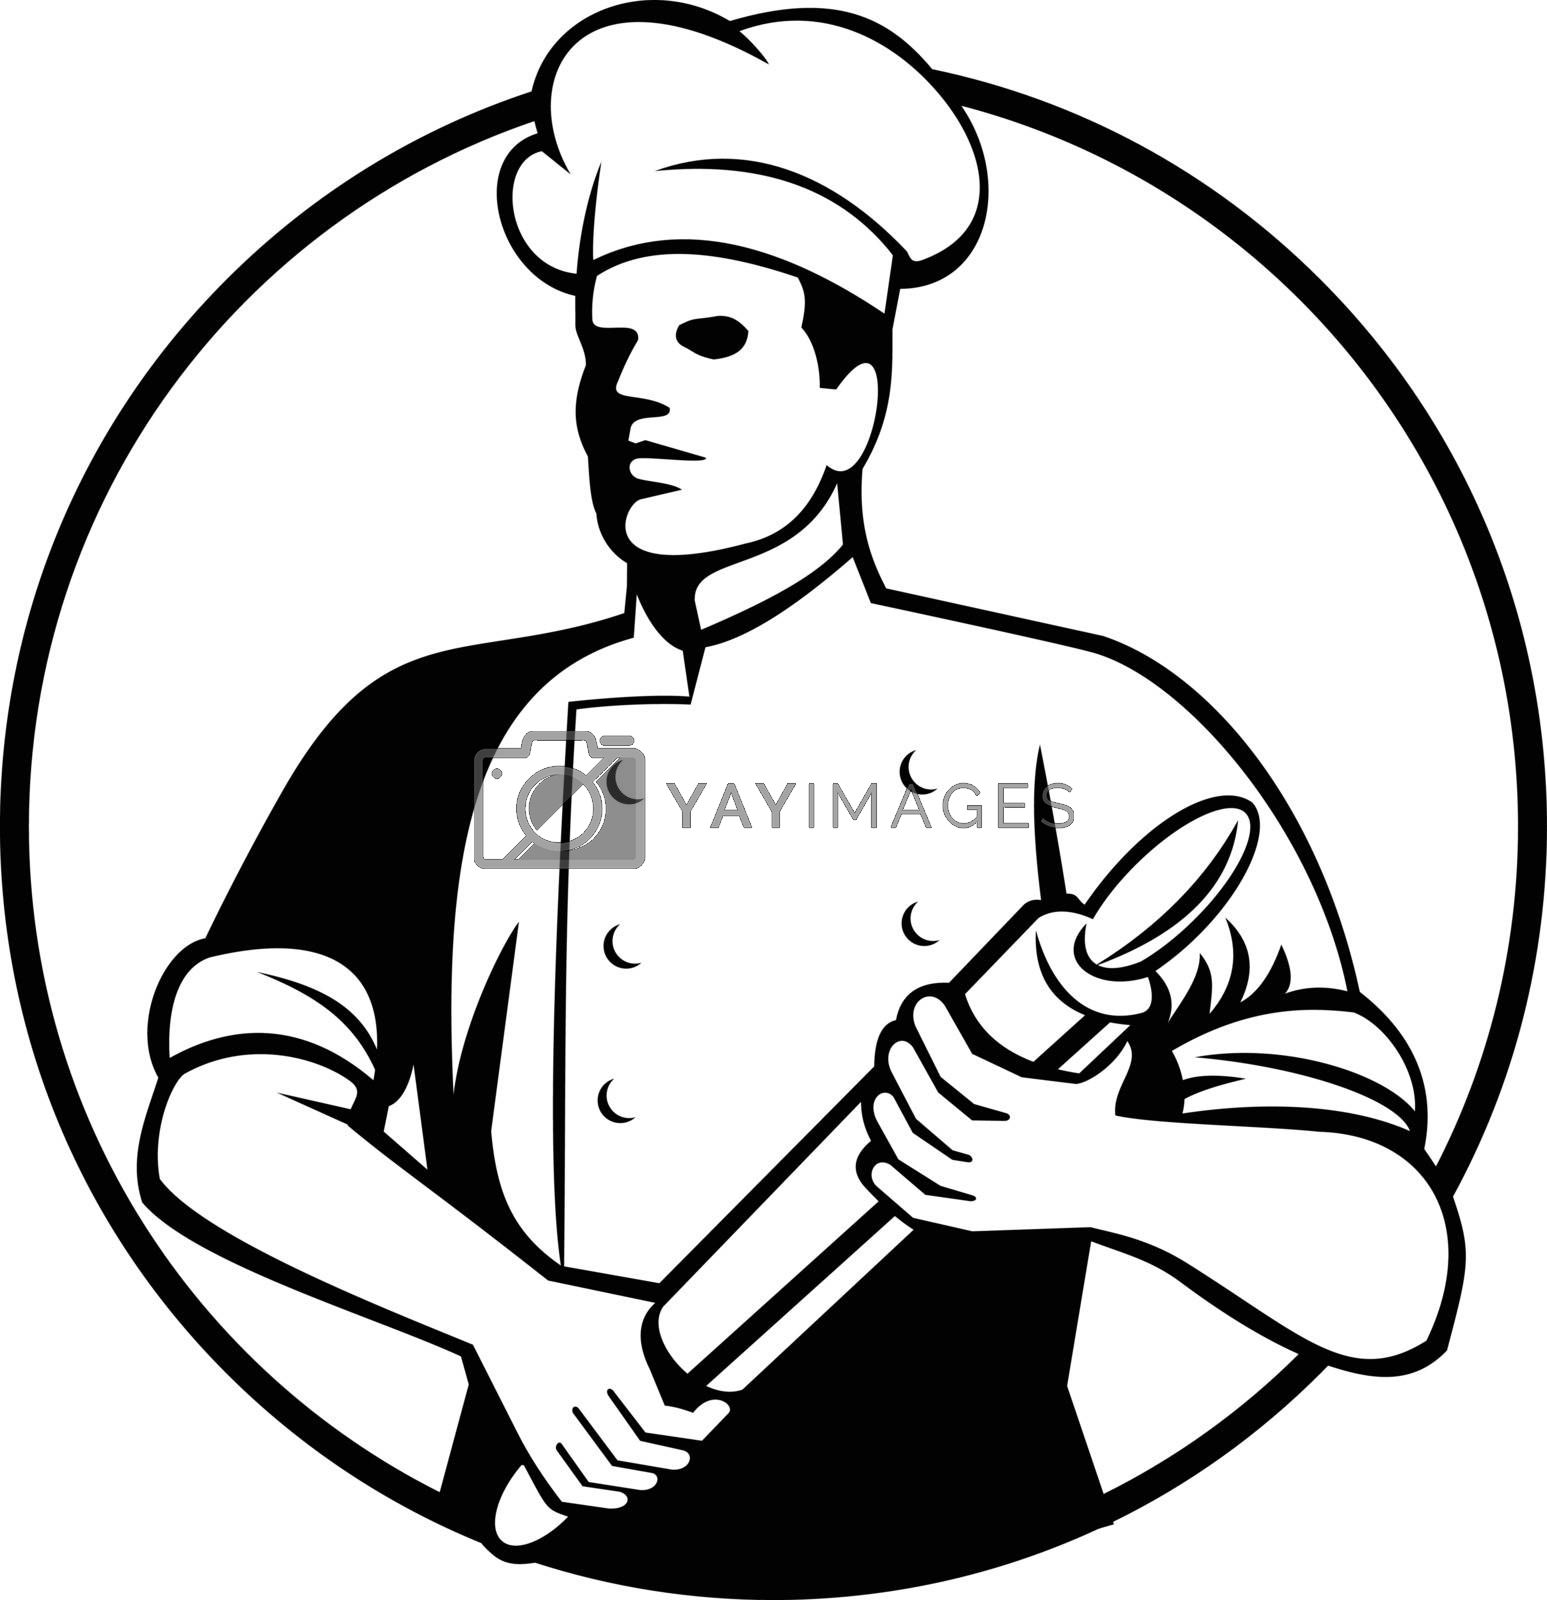 Retro black and white style illustration of a baker, chef, cook or food worker holding a rolling pin viewed from front set inside circle on isolated background.